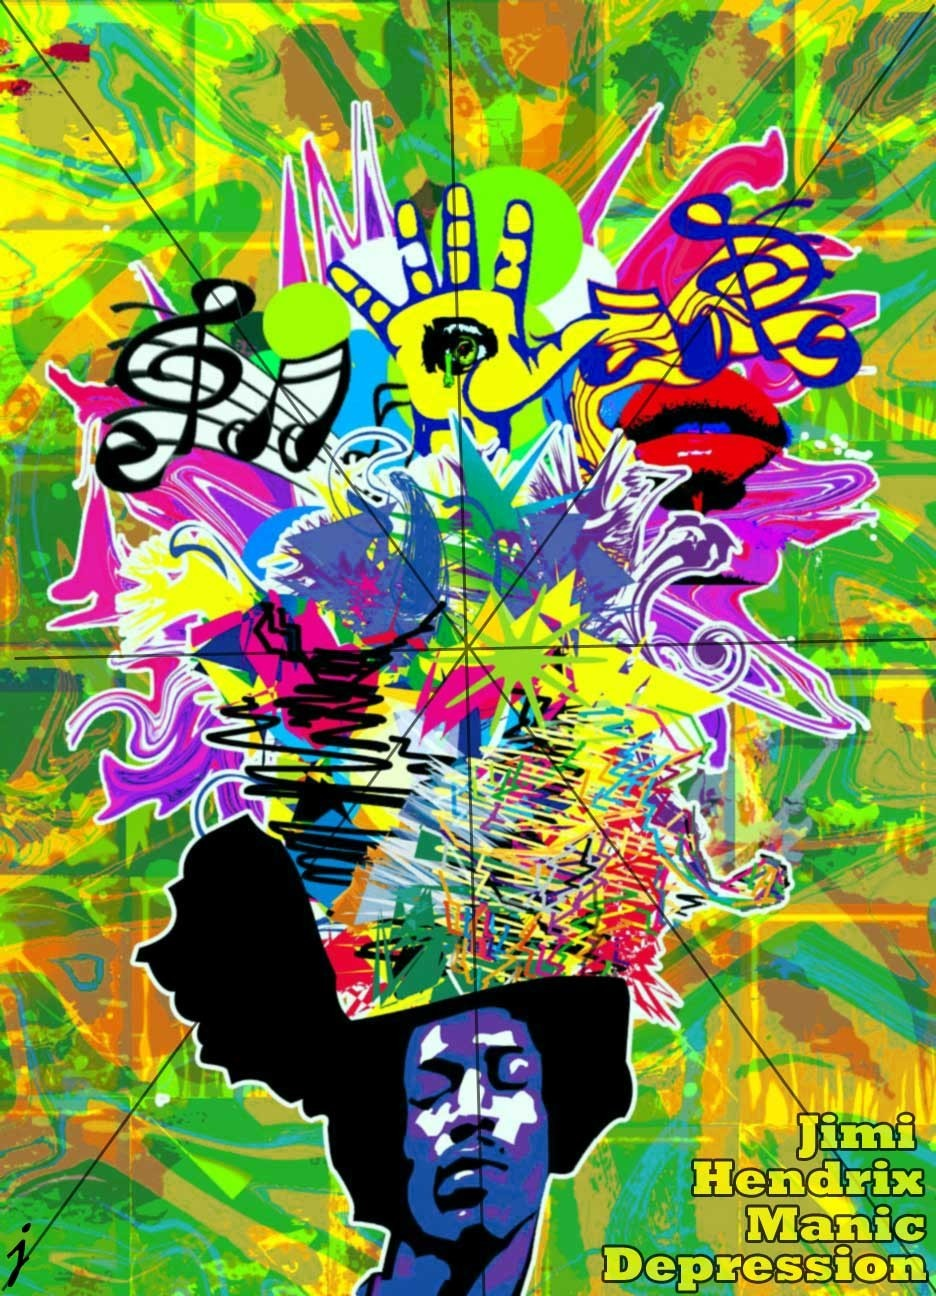 bipolar manic depression Bipolar disorder is a mental illness that causes dramatic shifts in a person's mood , energy and ability to think clearly people with bipolar experience high and low moods—known as mania and depression—which differ from the typical ups-and- downs most people experience the average age-of-onset is about 25, but it can.